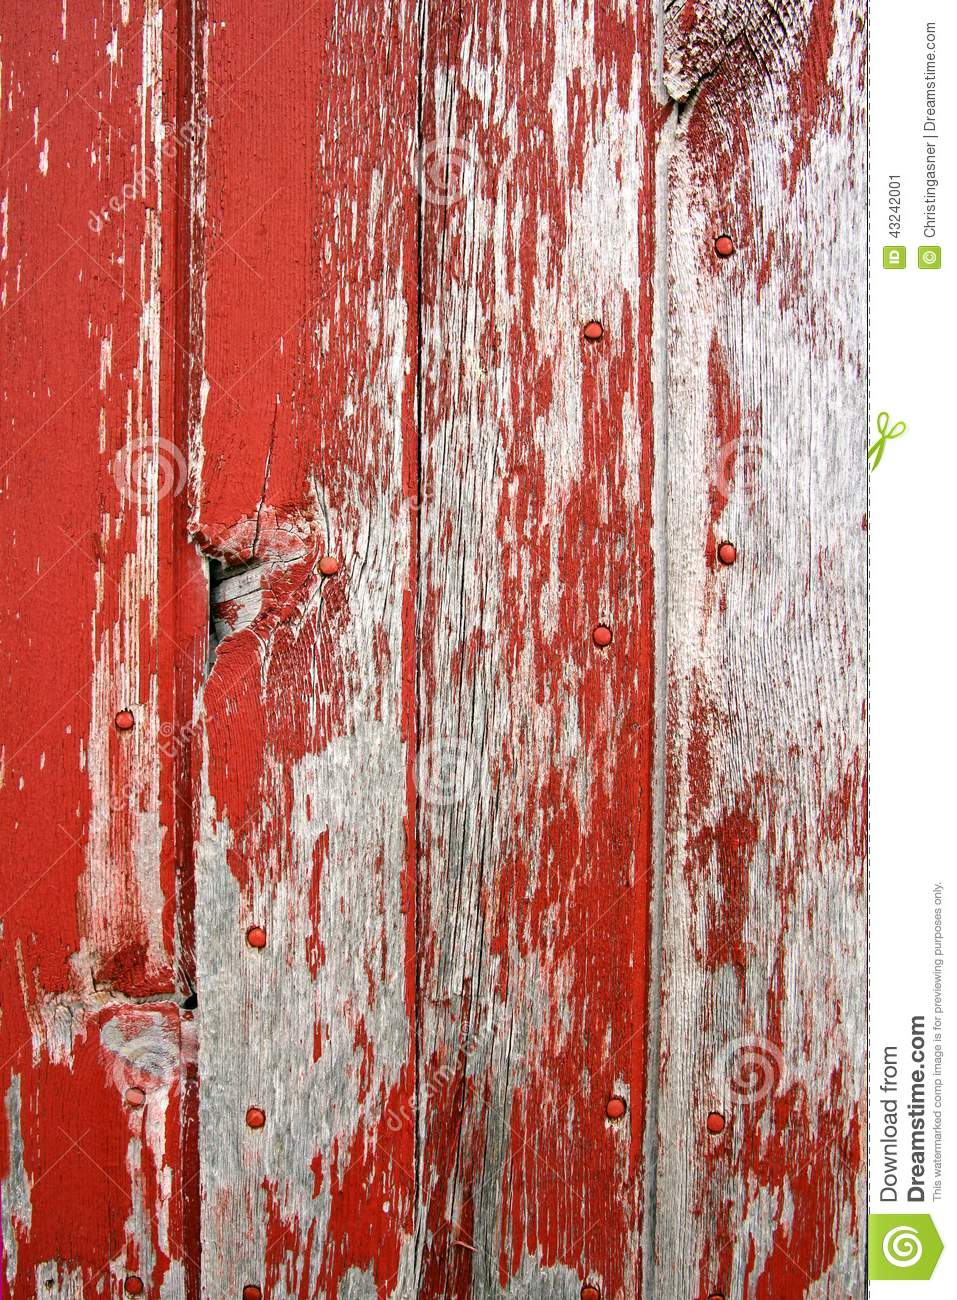 red rustic barn wood background aged barnwood boards peeling paint 957x1300